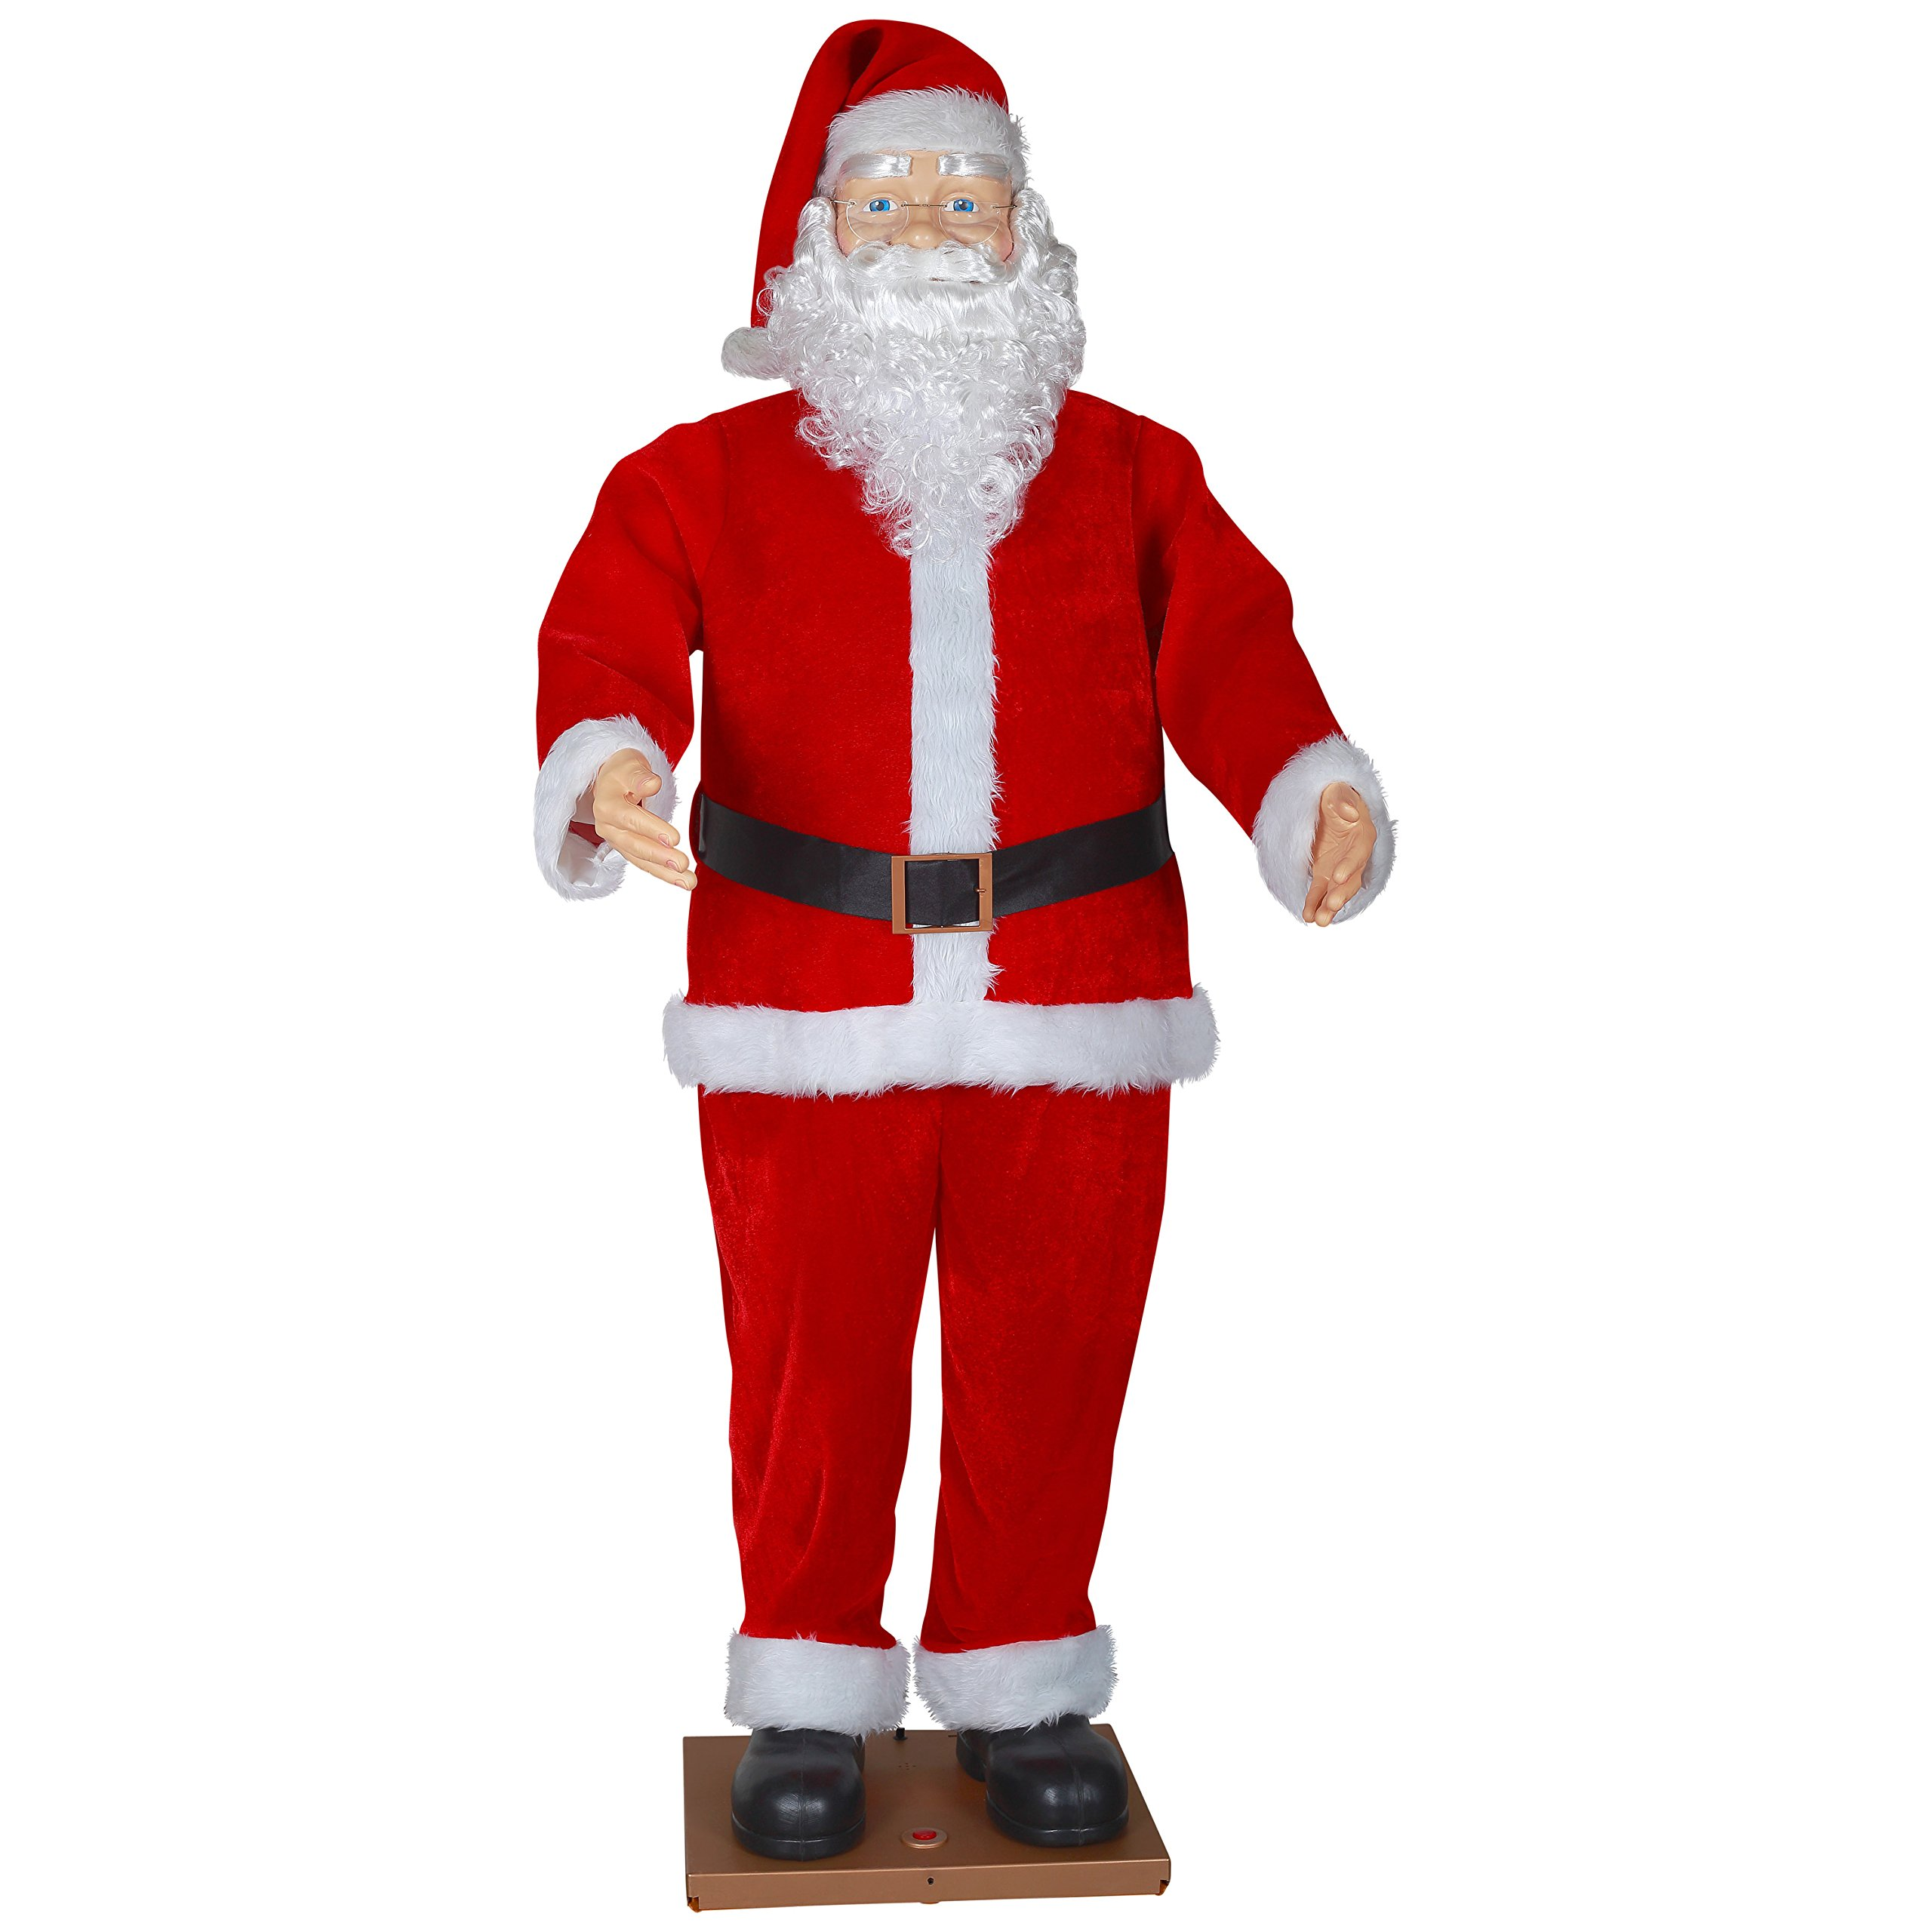 6' Life Size Animated Dancing Santa with Realistic Face by Gemmy (Image #1)